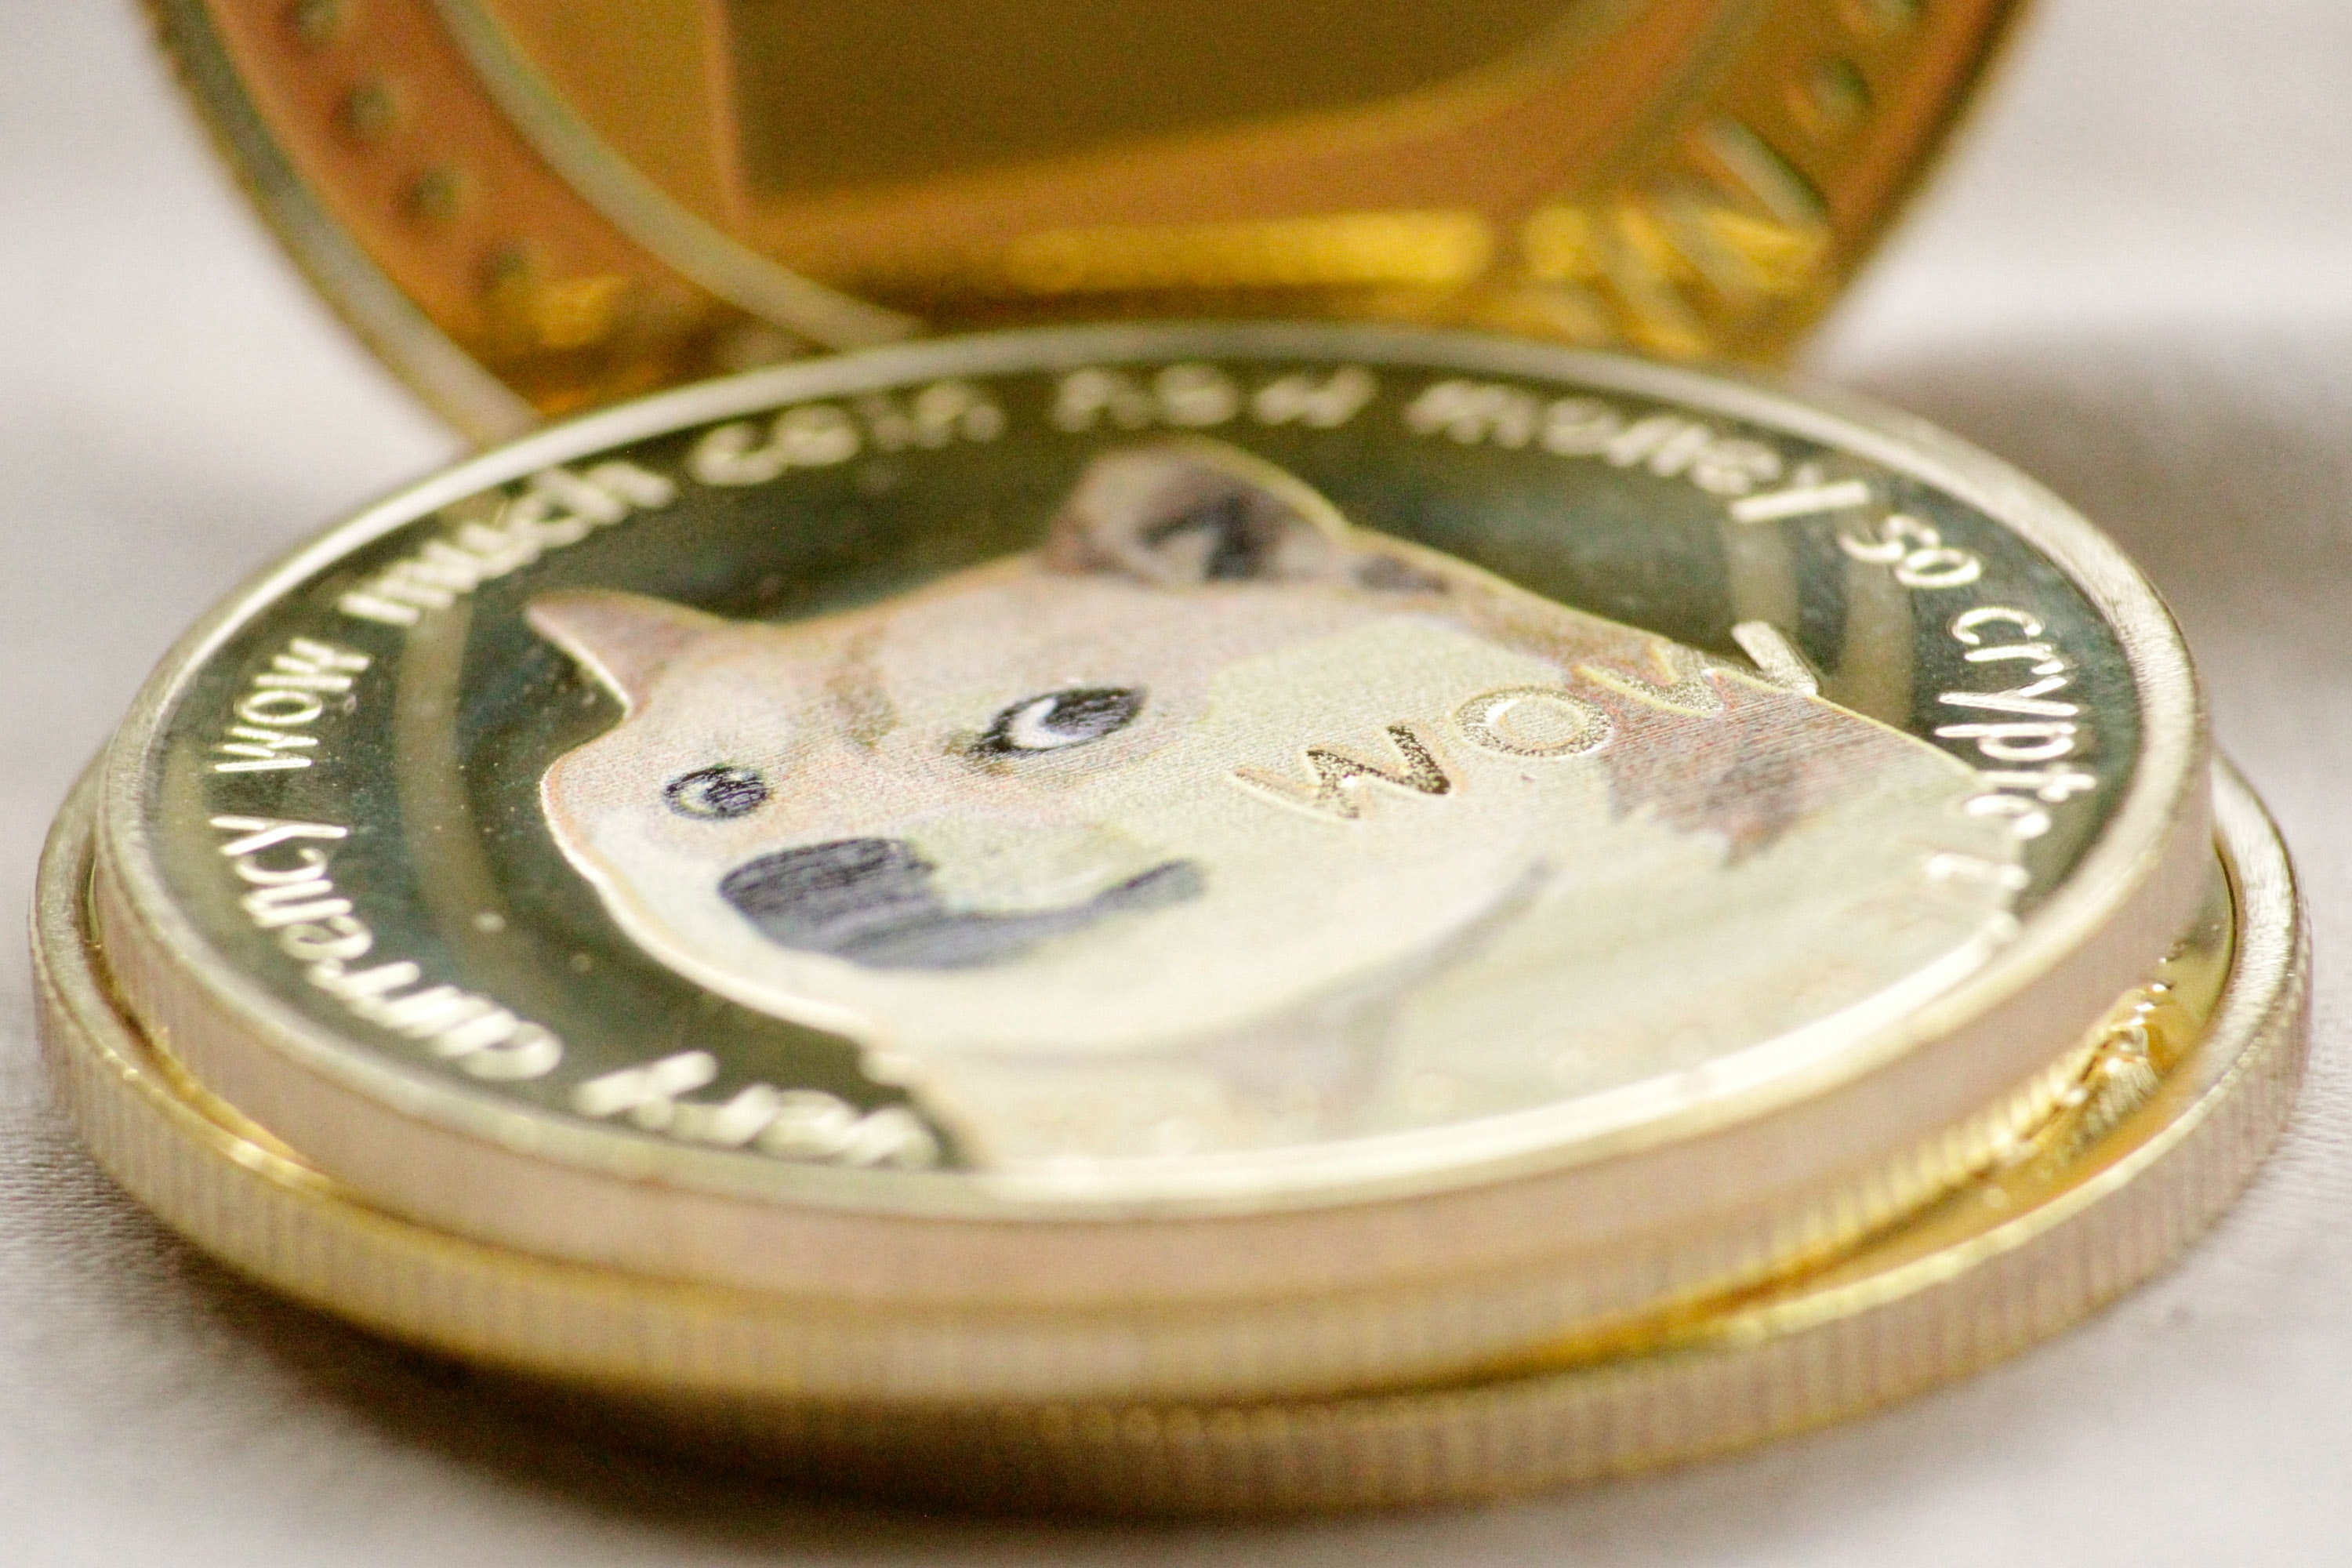 Dogecoin Community Baffled Over Cuban's Claims He Holds Just $500 In DOGE